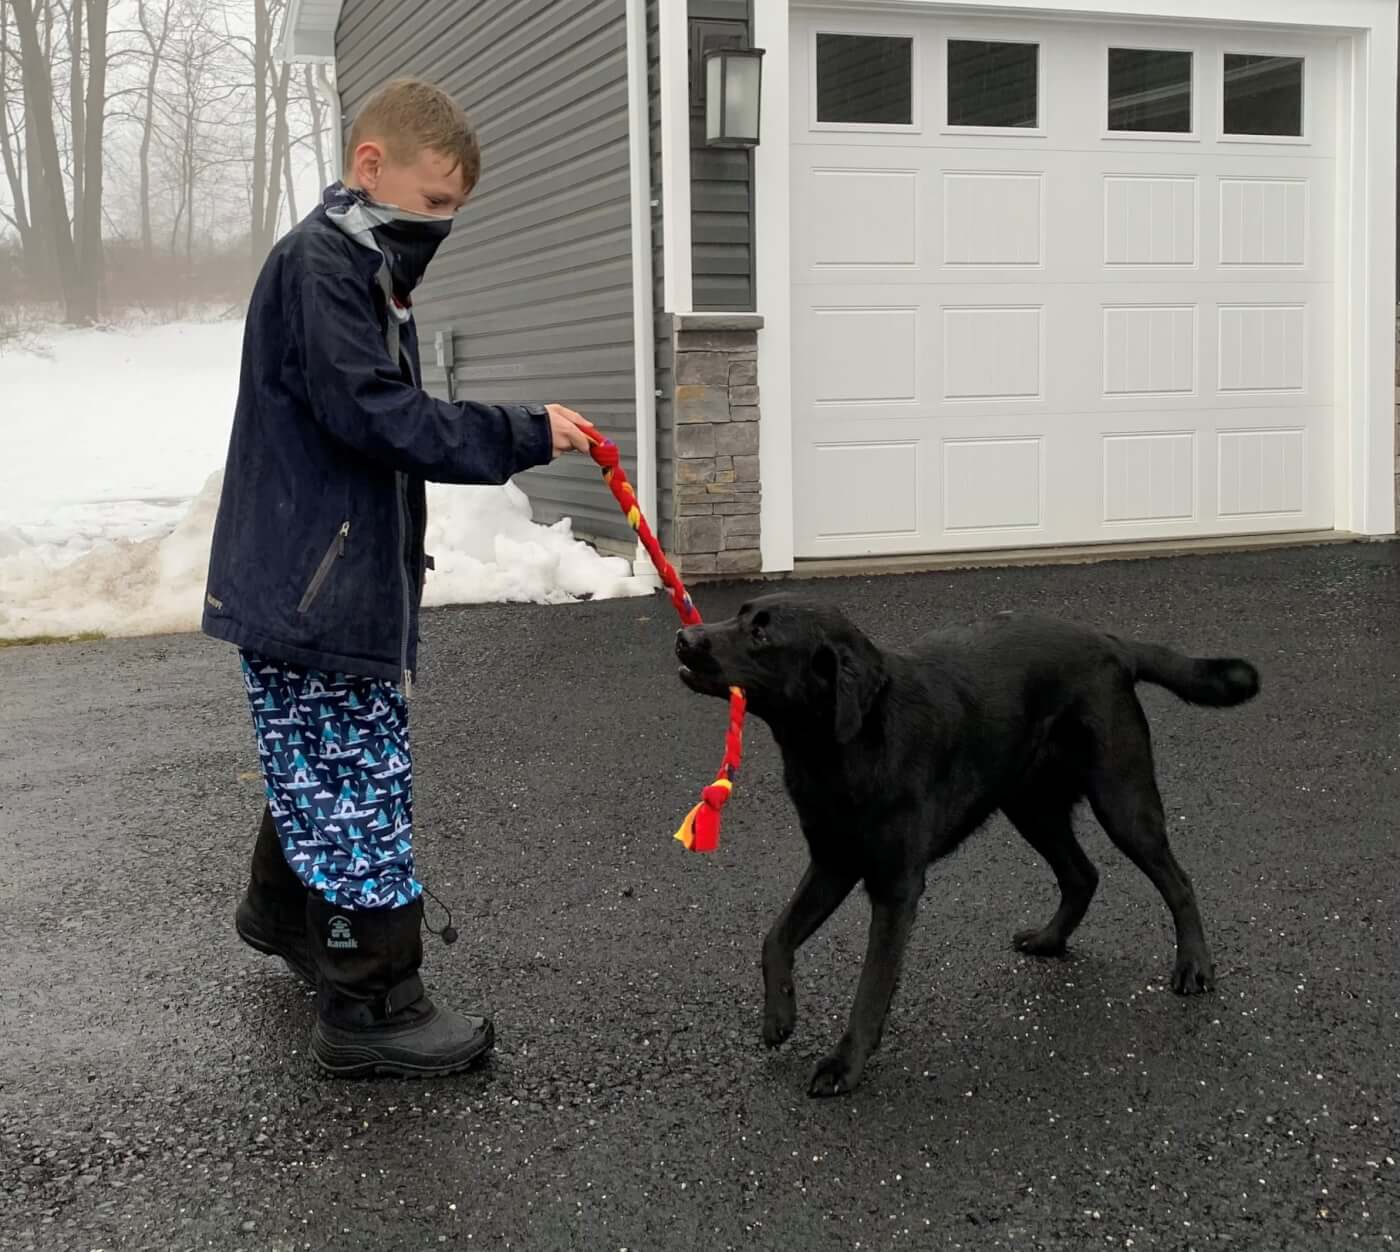 Ryan playing with a dog with his pup tugs